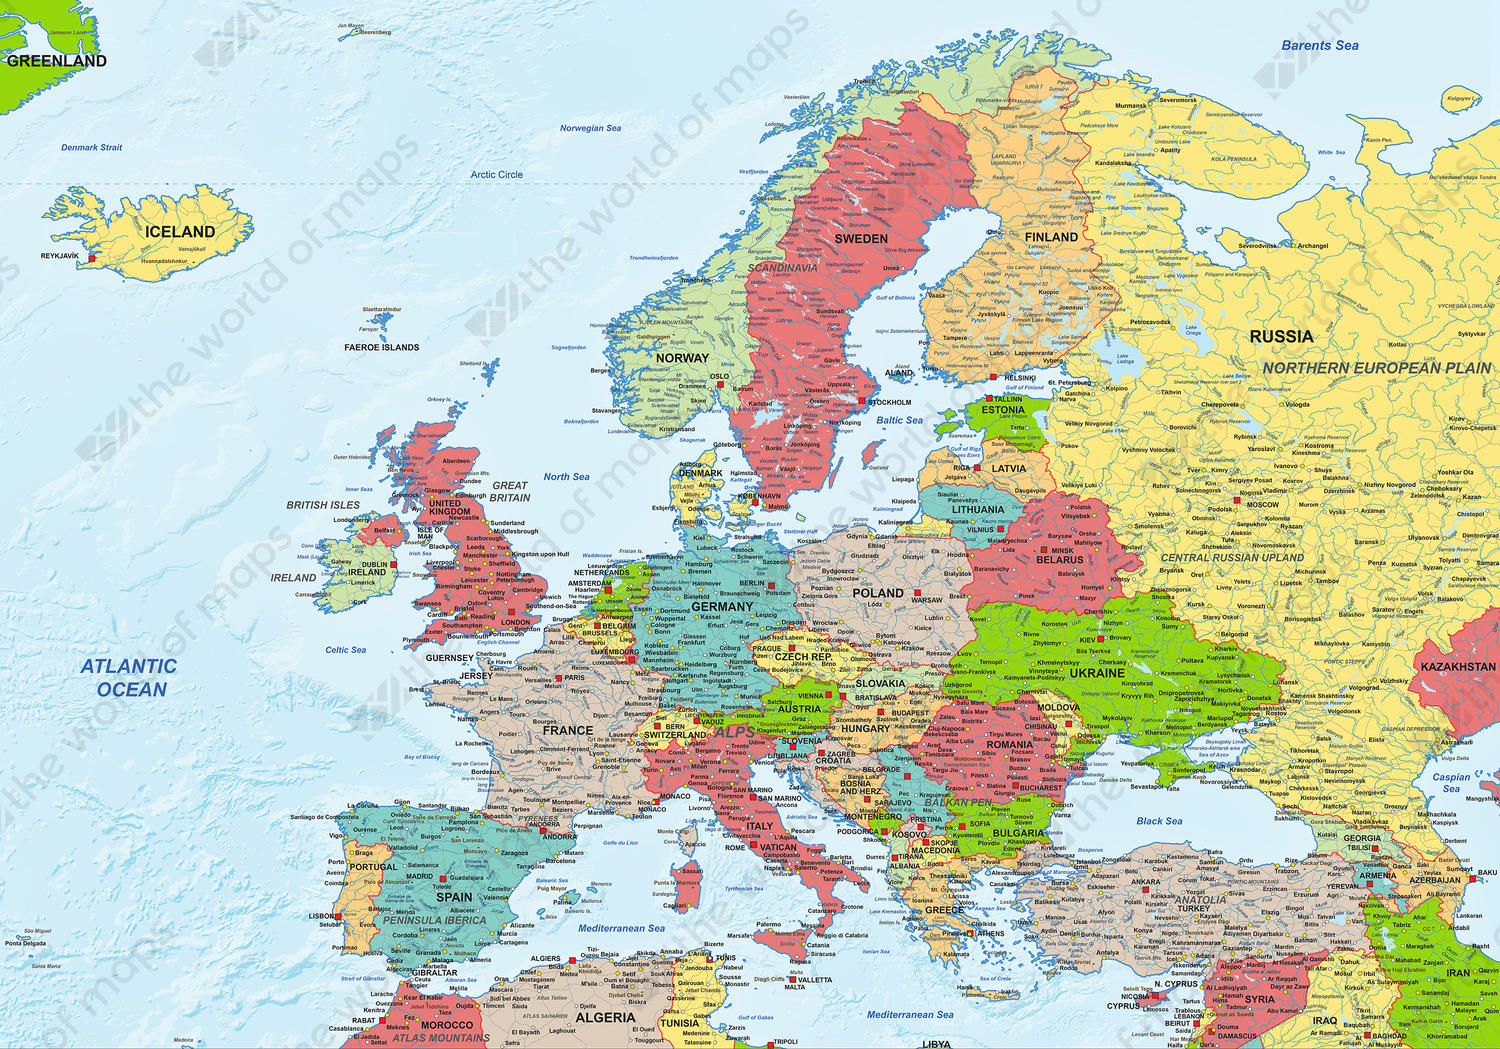 Digital Map Europe Political 1281 | The World of Maps.com